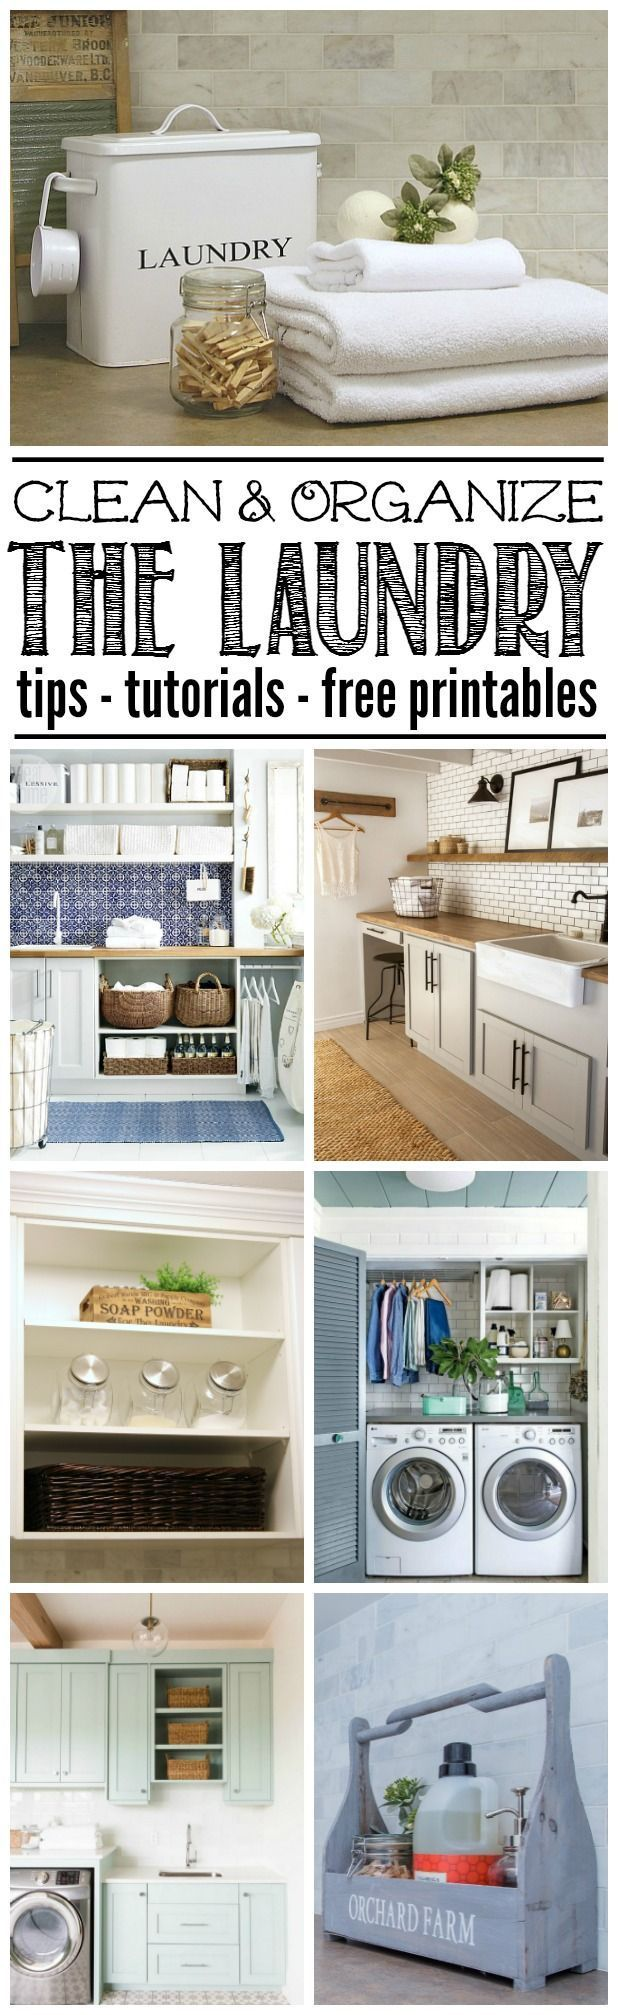 1522 best cleaning :: tips from the pros images on Pinterest ...